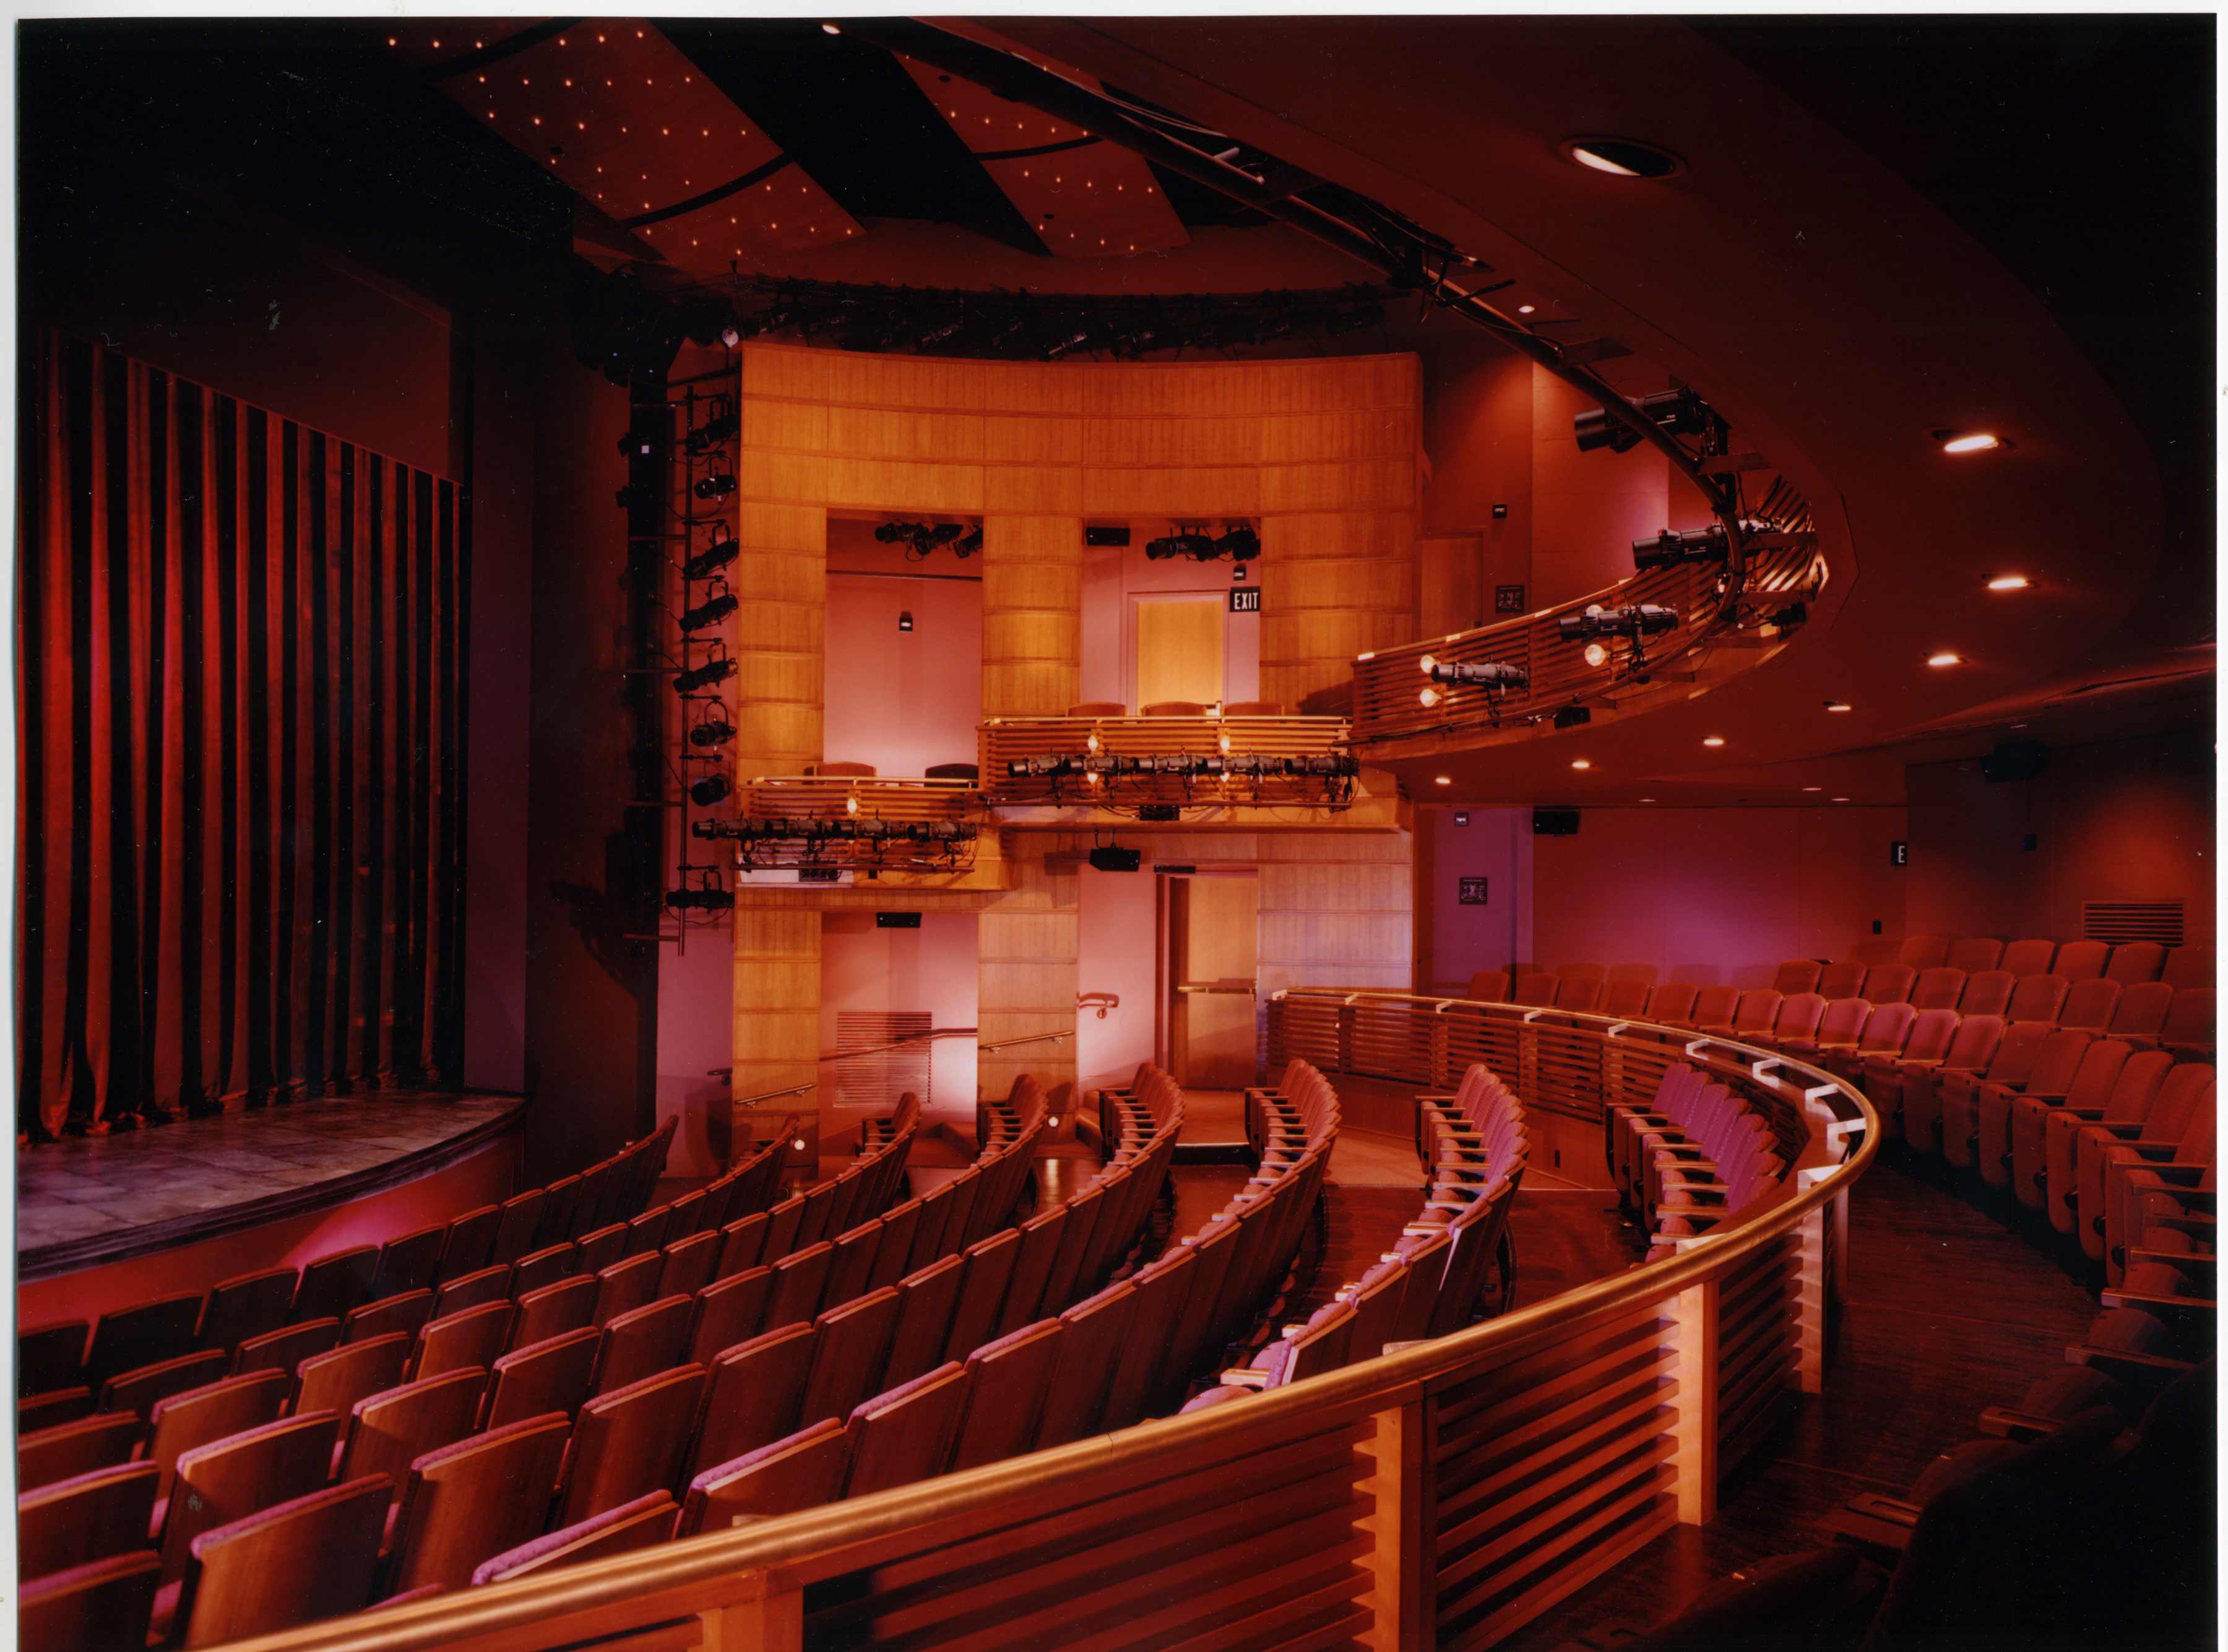 South Coast Repertory Theatre - Henry T  Segerstrom